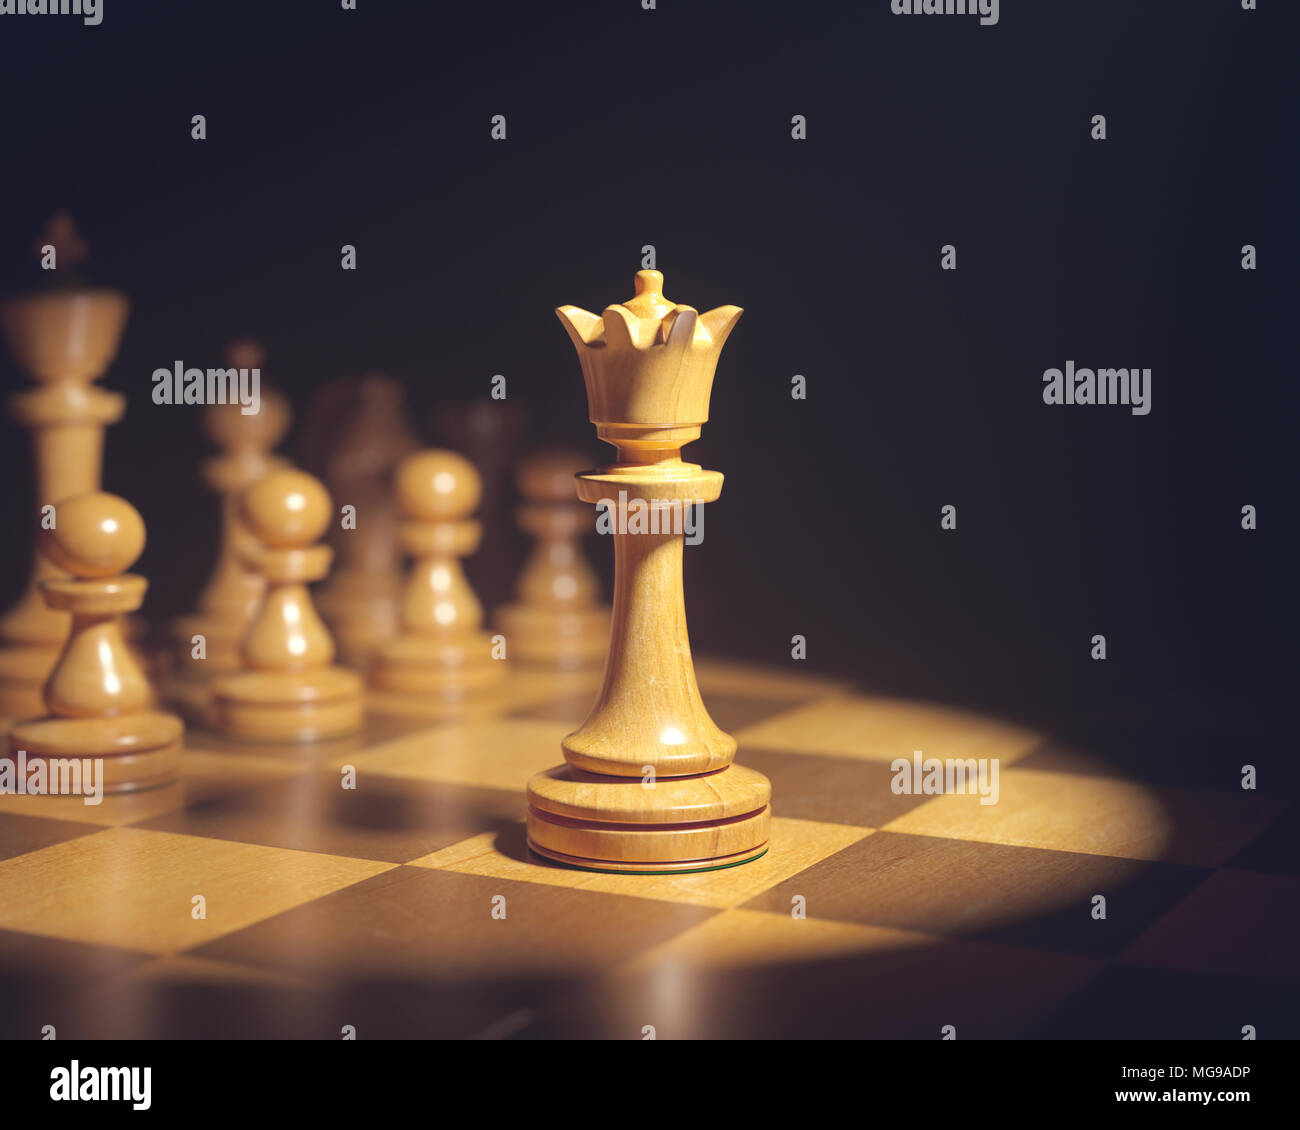 Chess queen on board. - Stock Image